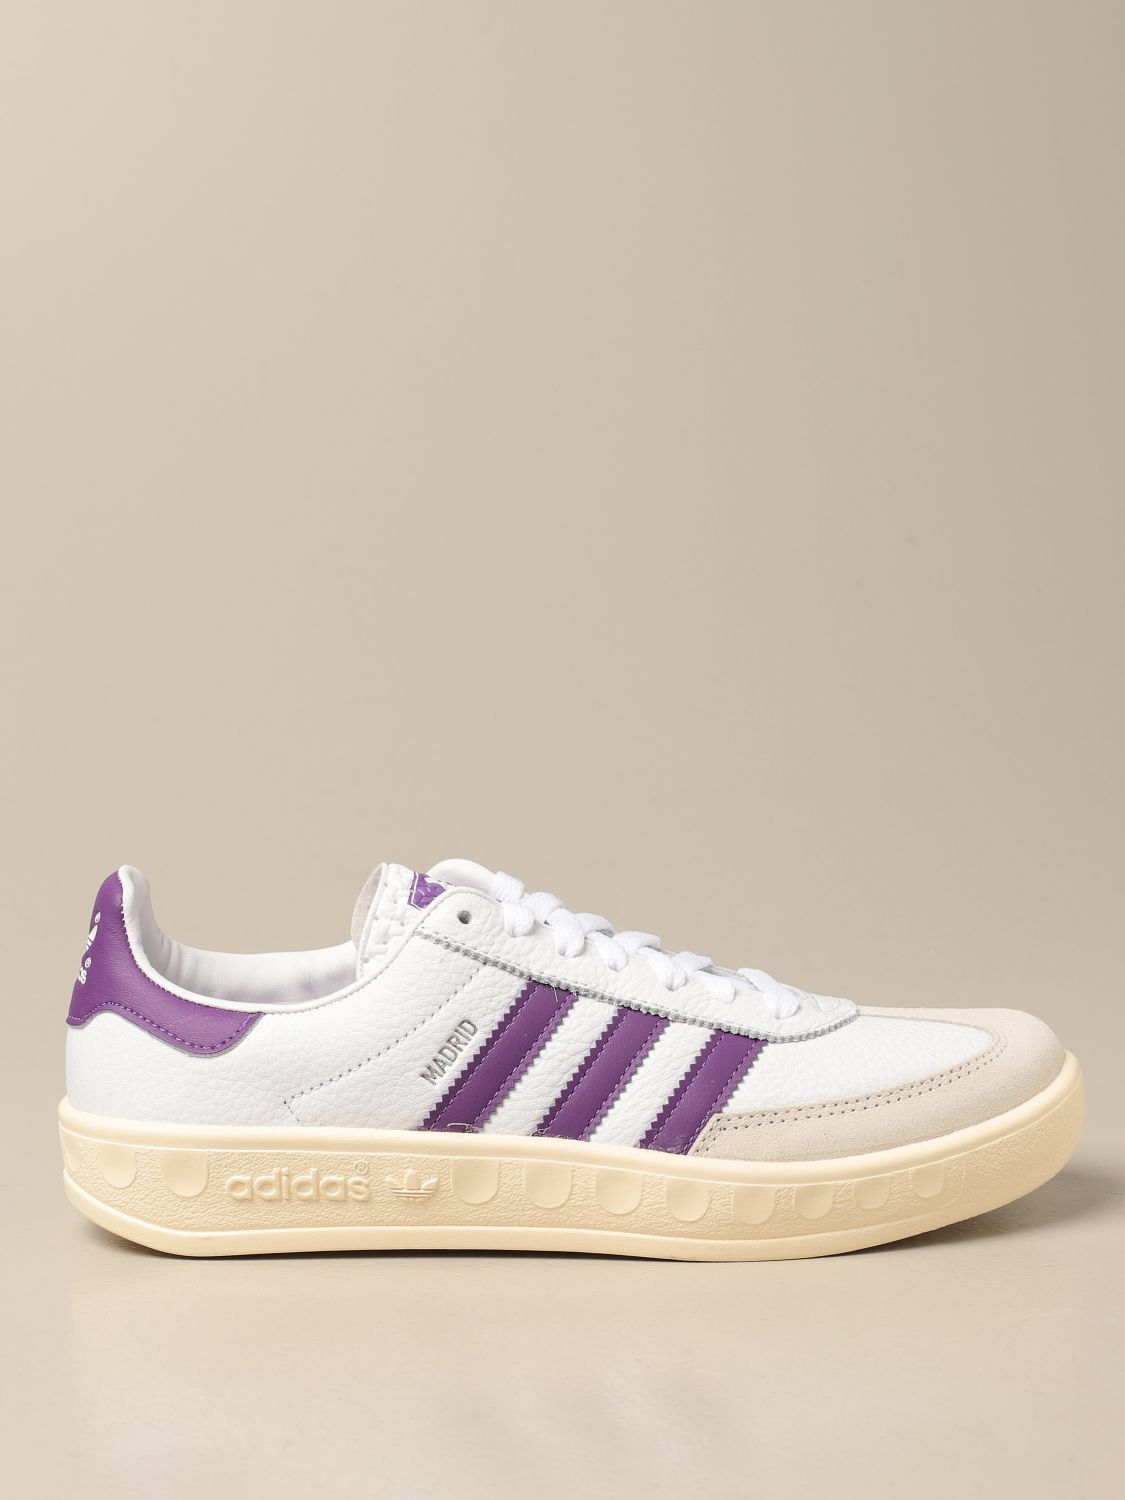 Sneakers Adidas Originals: Madrid Adidas Originals sneakers in leather and suede white 1